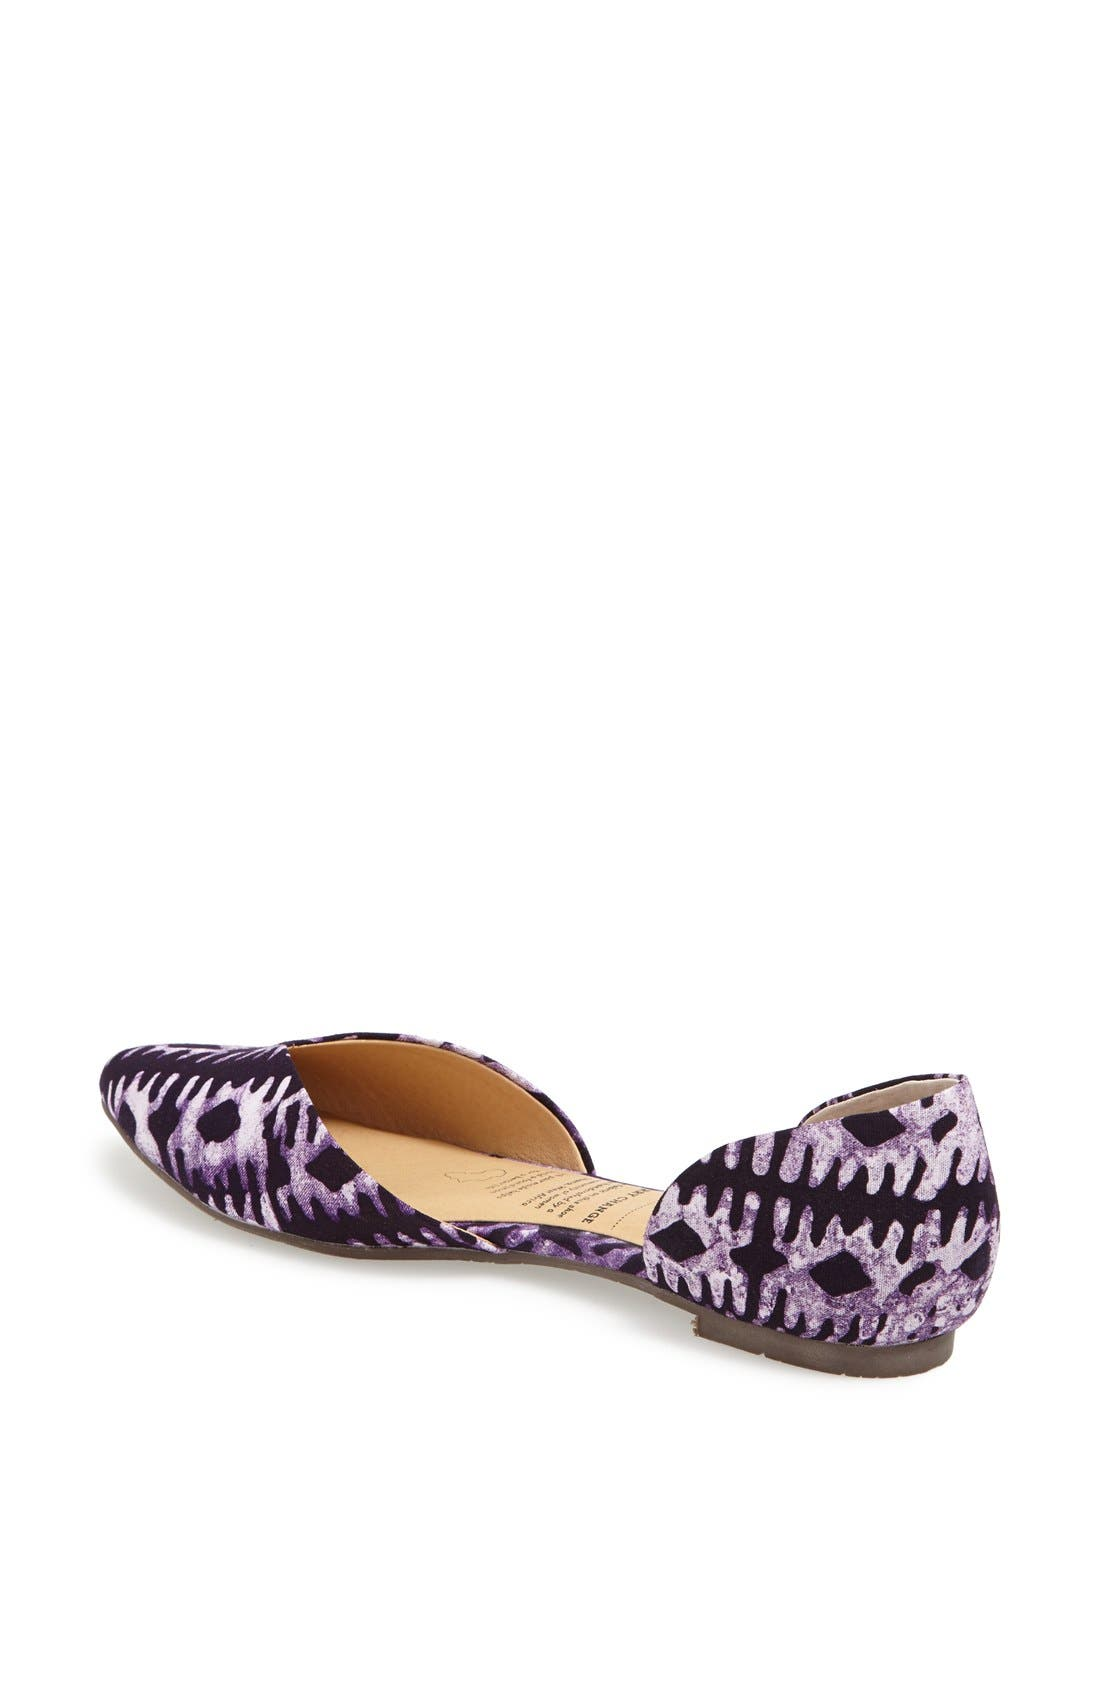 Alternate Image 2  - BC Footwear 'Up All Night' d'Orsay Flat